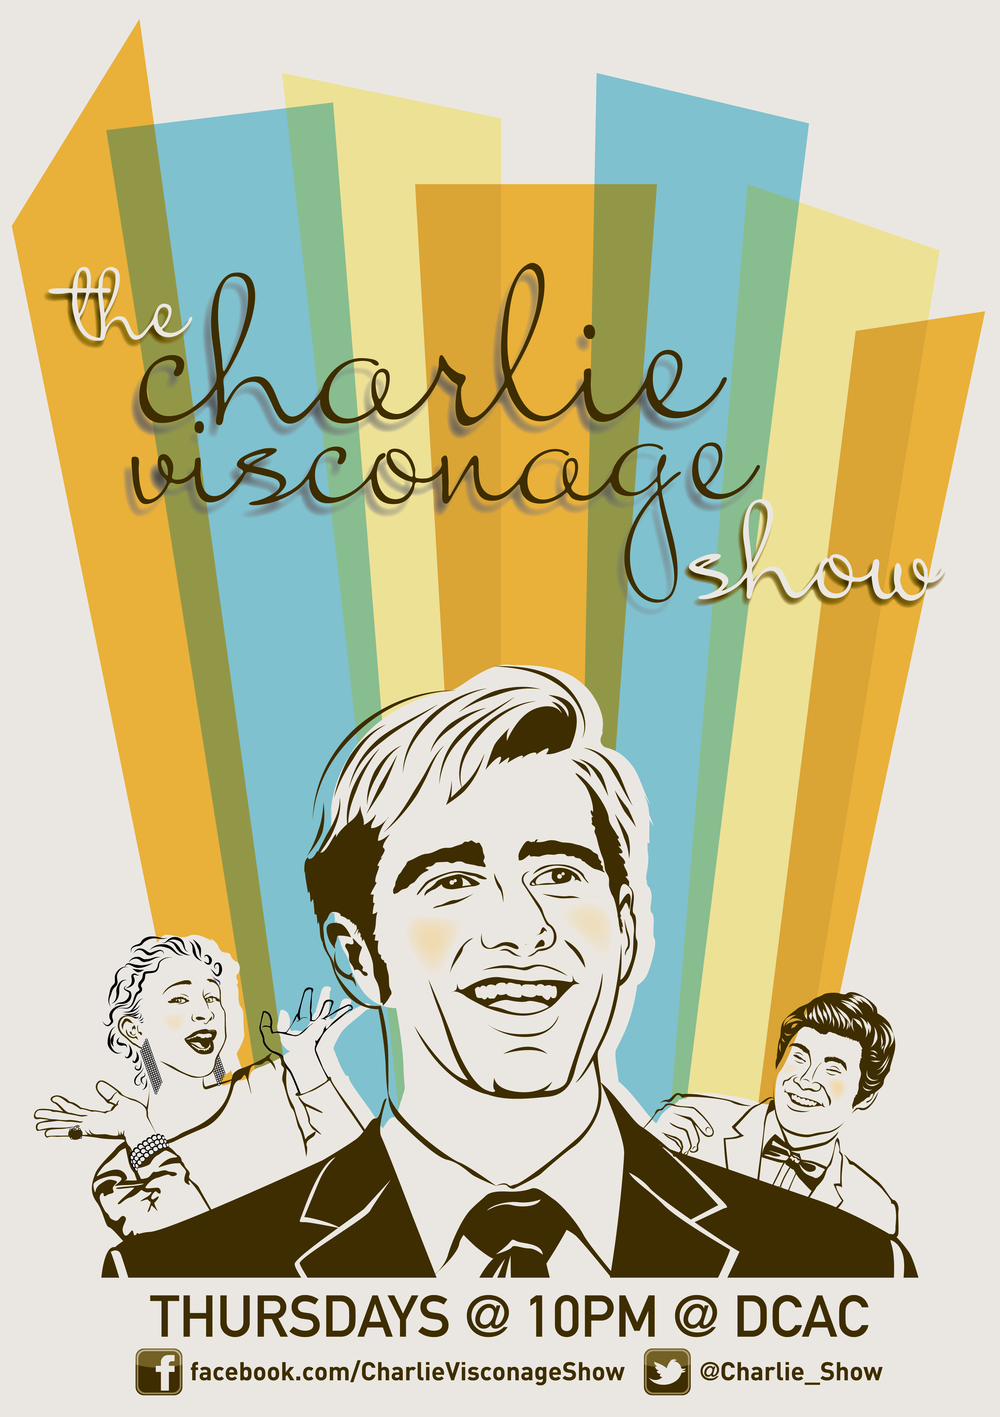 Charlie Visconage Show Posters